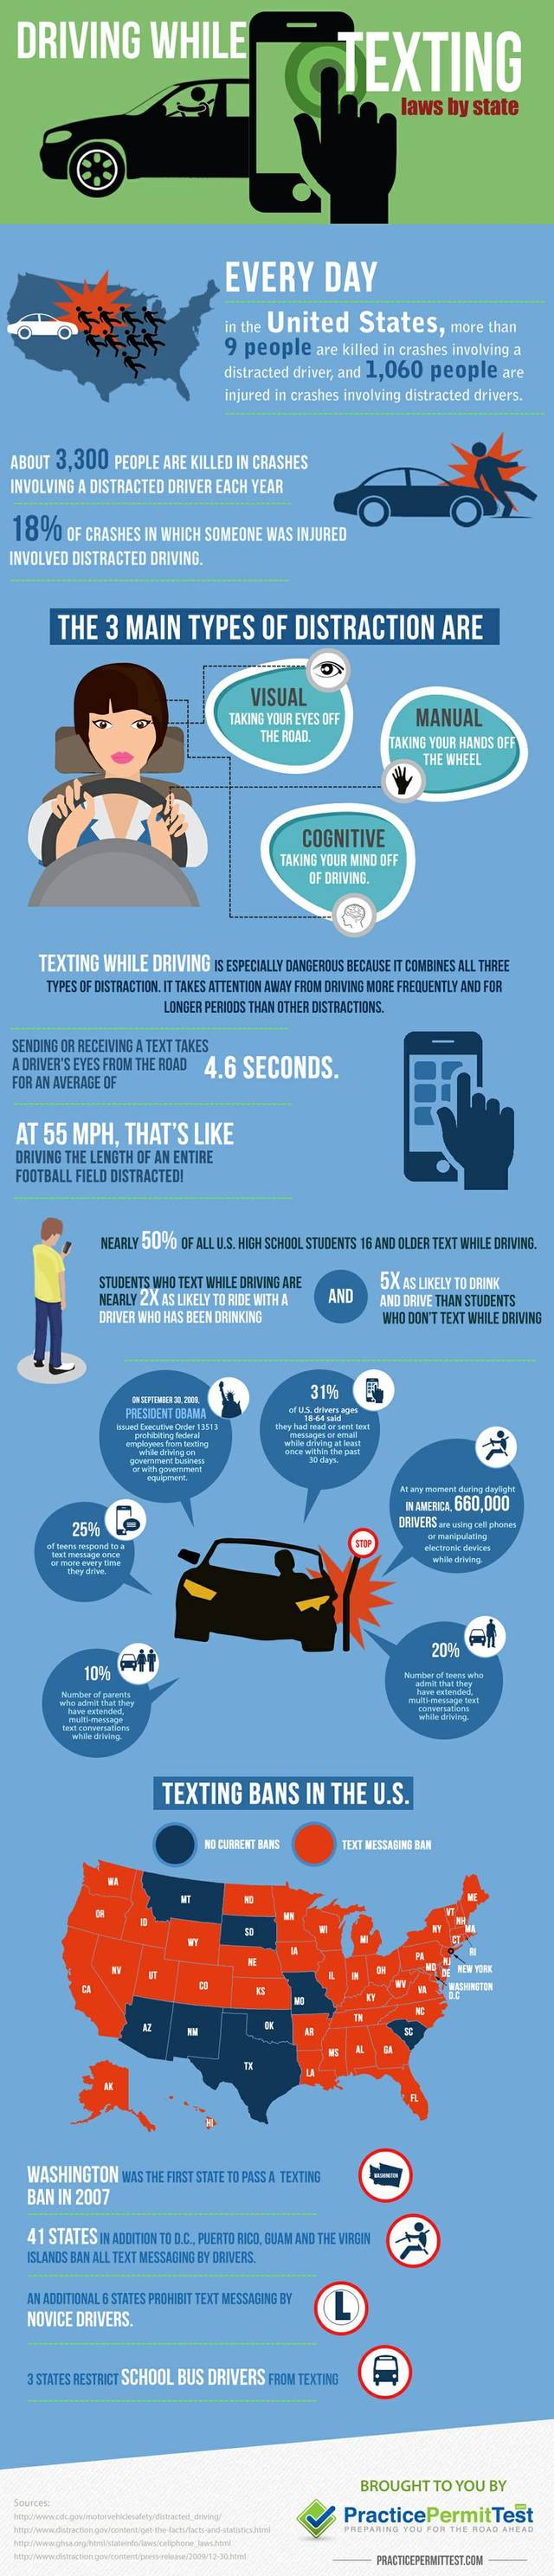 Driving while texting infographic